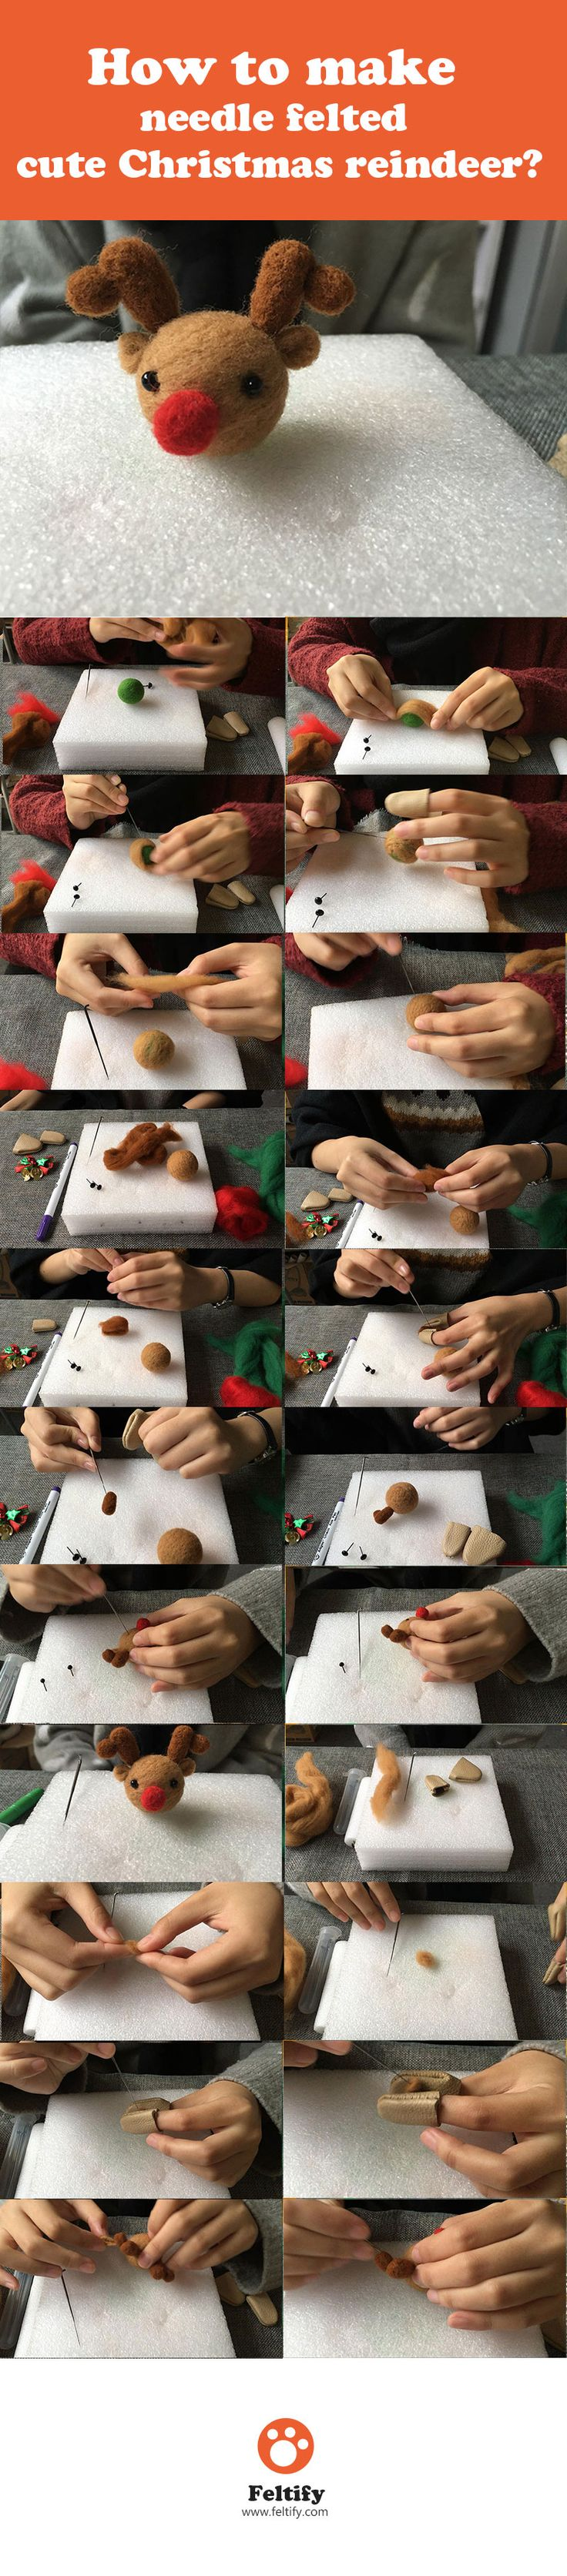 How to make needle felted cute Christmas reindeer(Needle felting tutorial for beginner starters project)